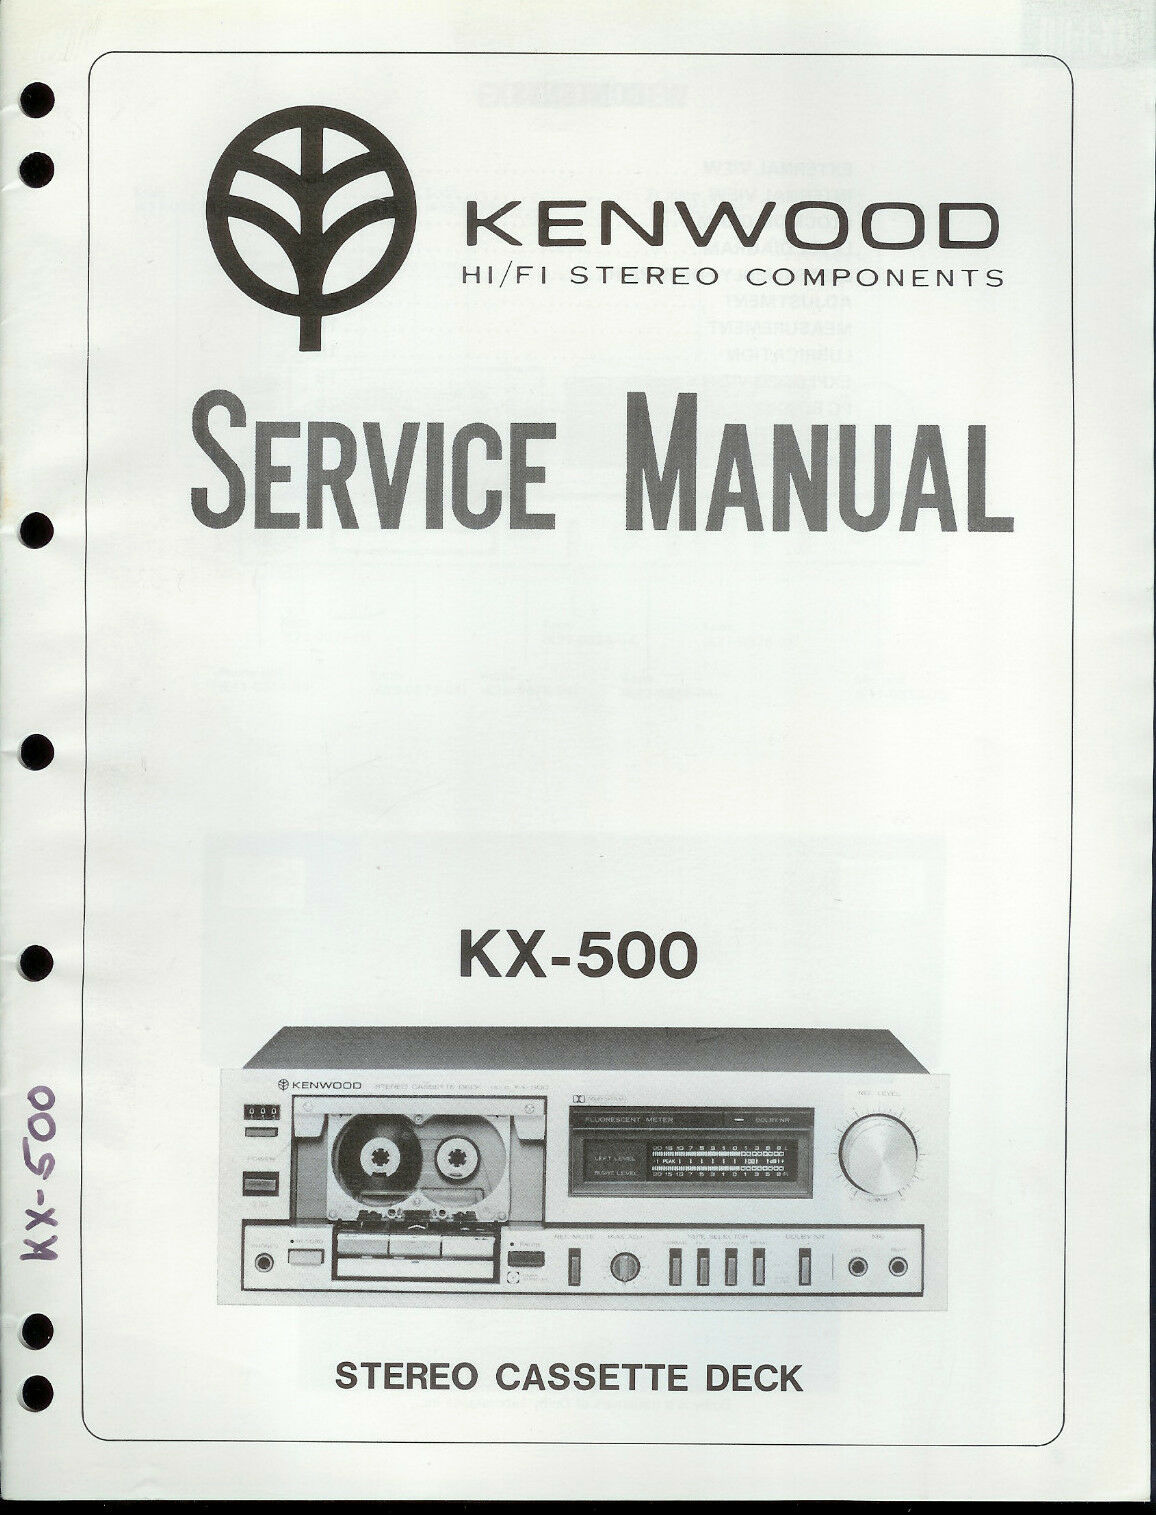 Original Factory Kenwood KX-500 Cassette Deck Service/Repair Manual 1 of  1Only 1 available ...